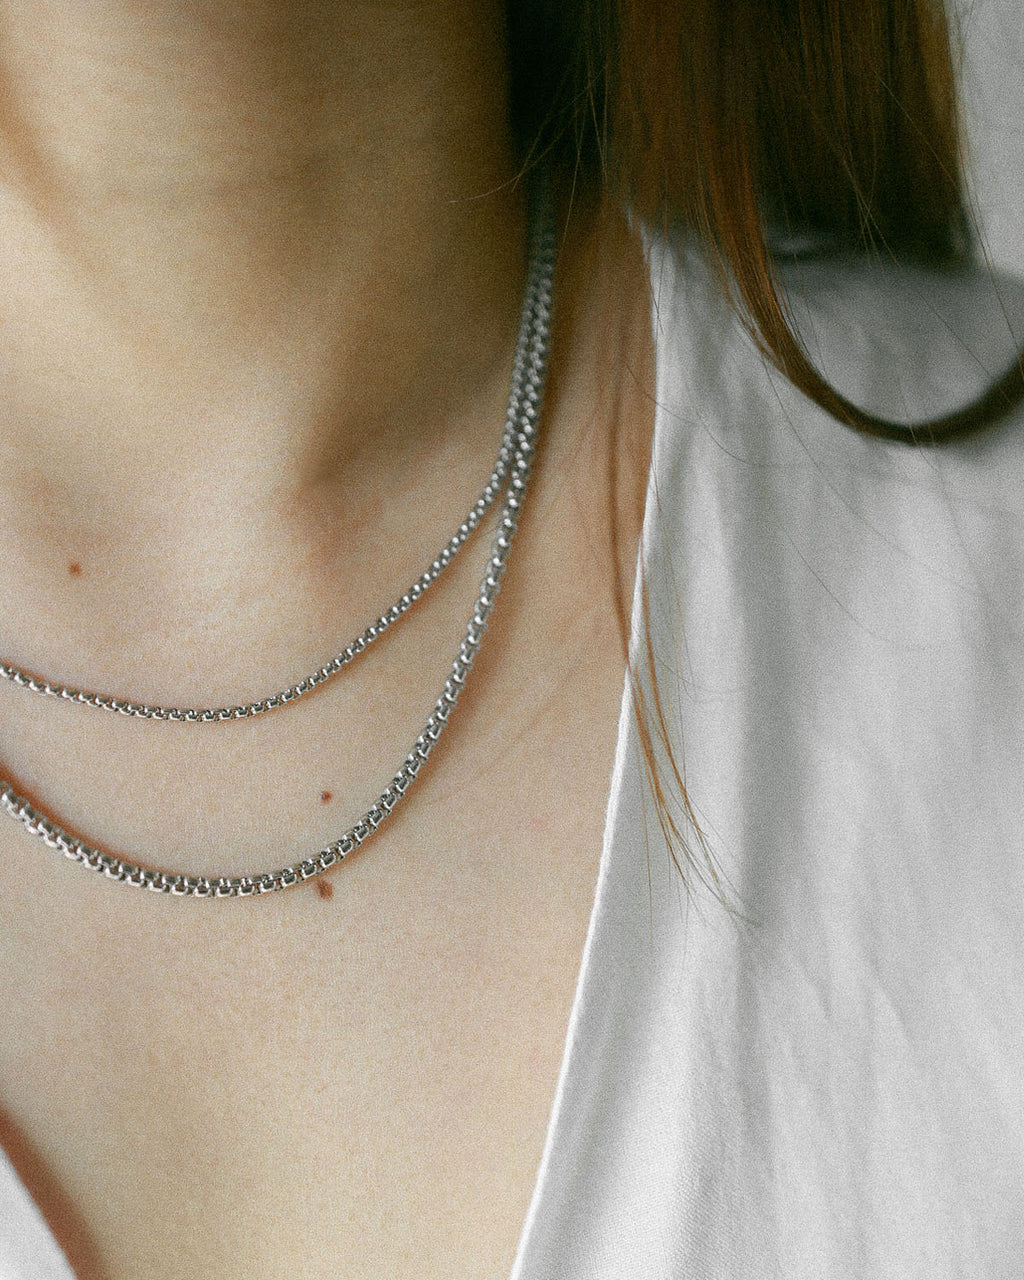 Layered box cut chains in silver from The Hexad's Necklace Collection